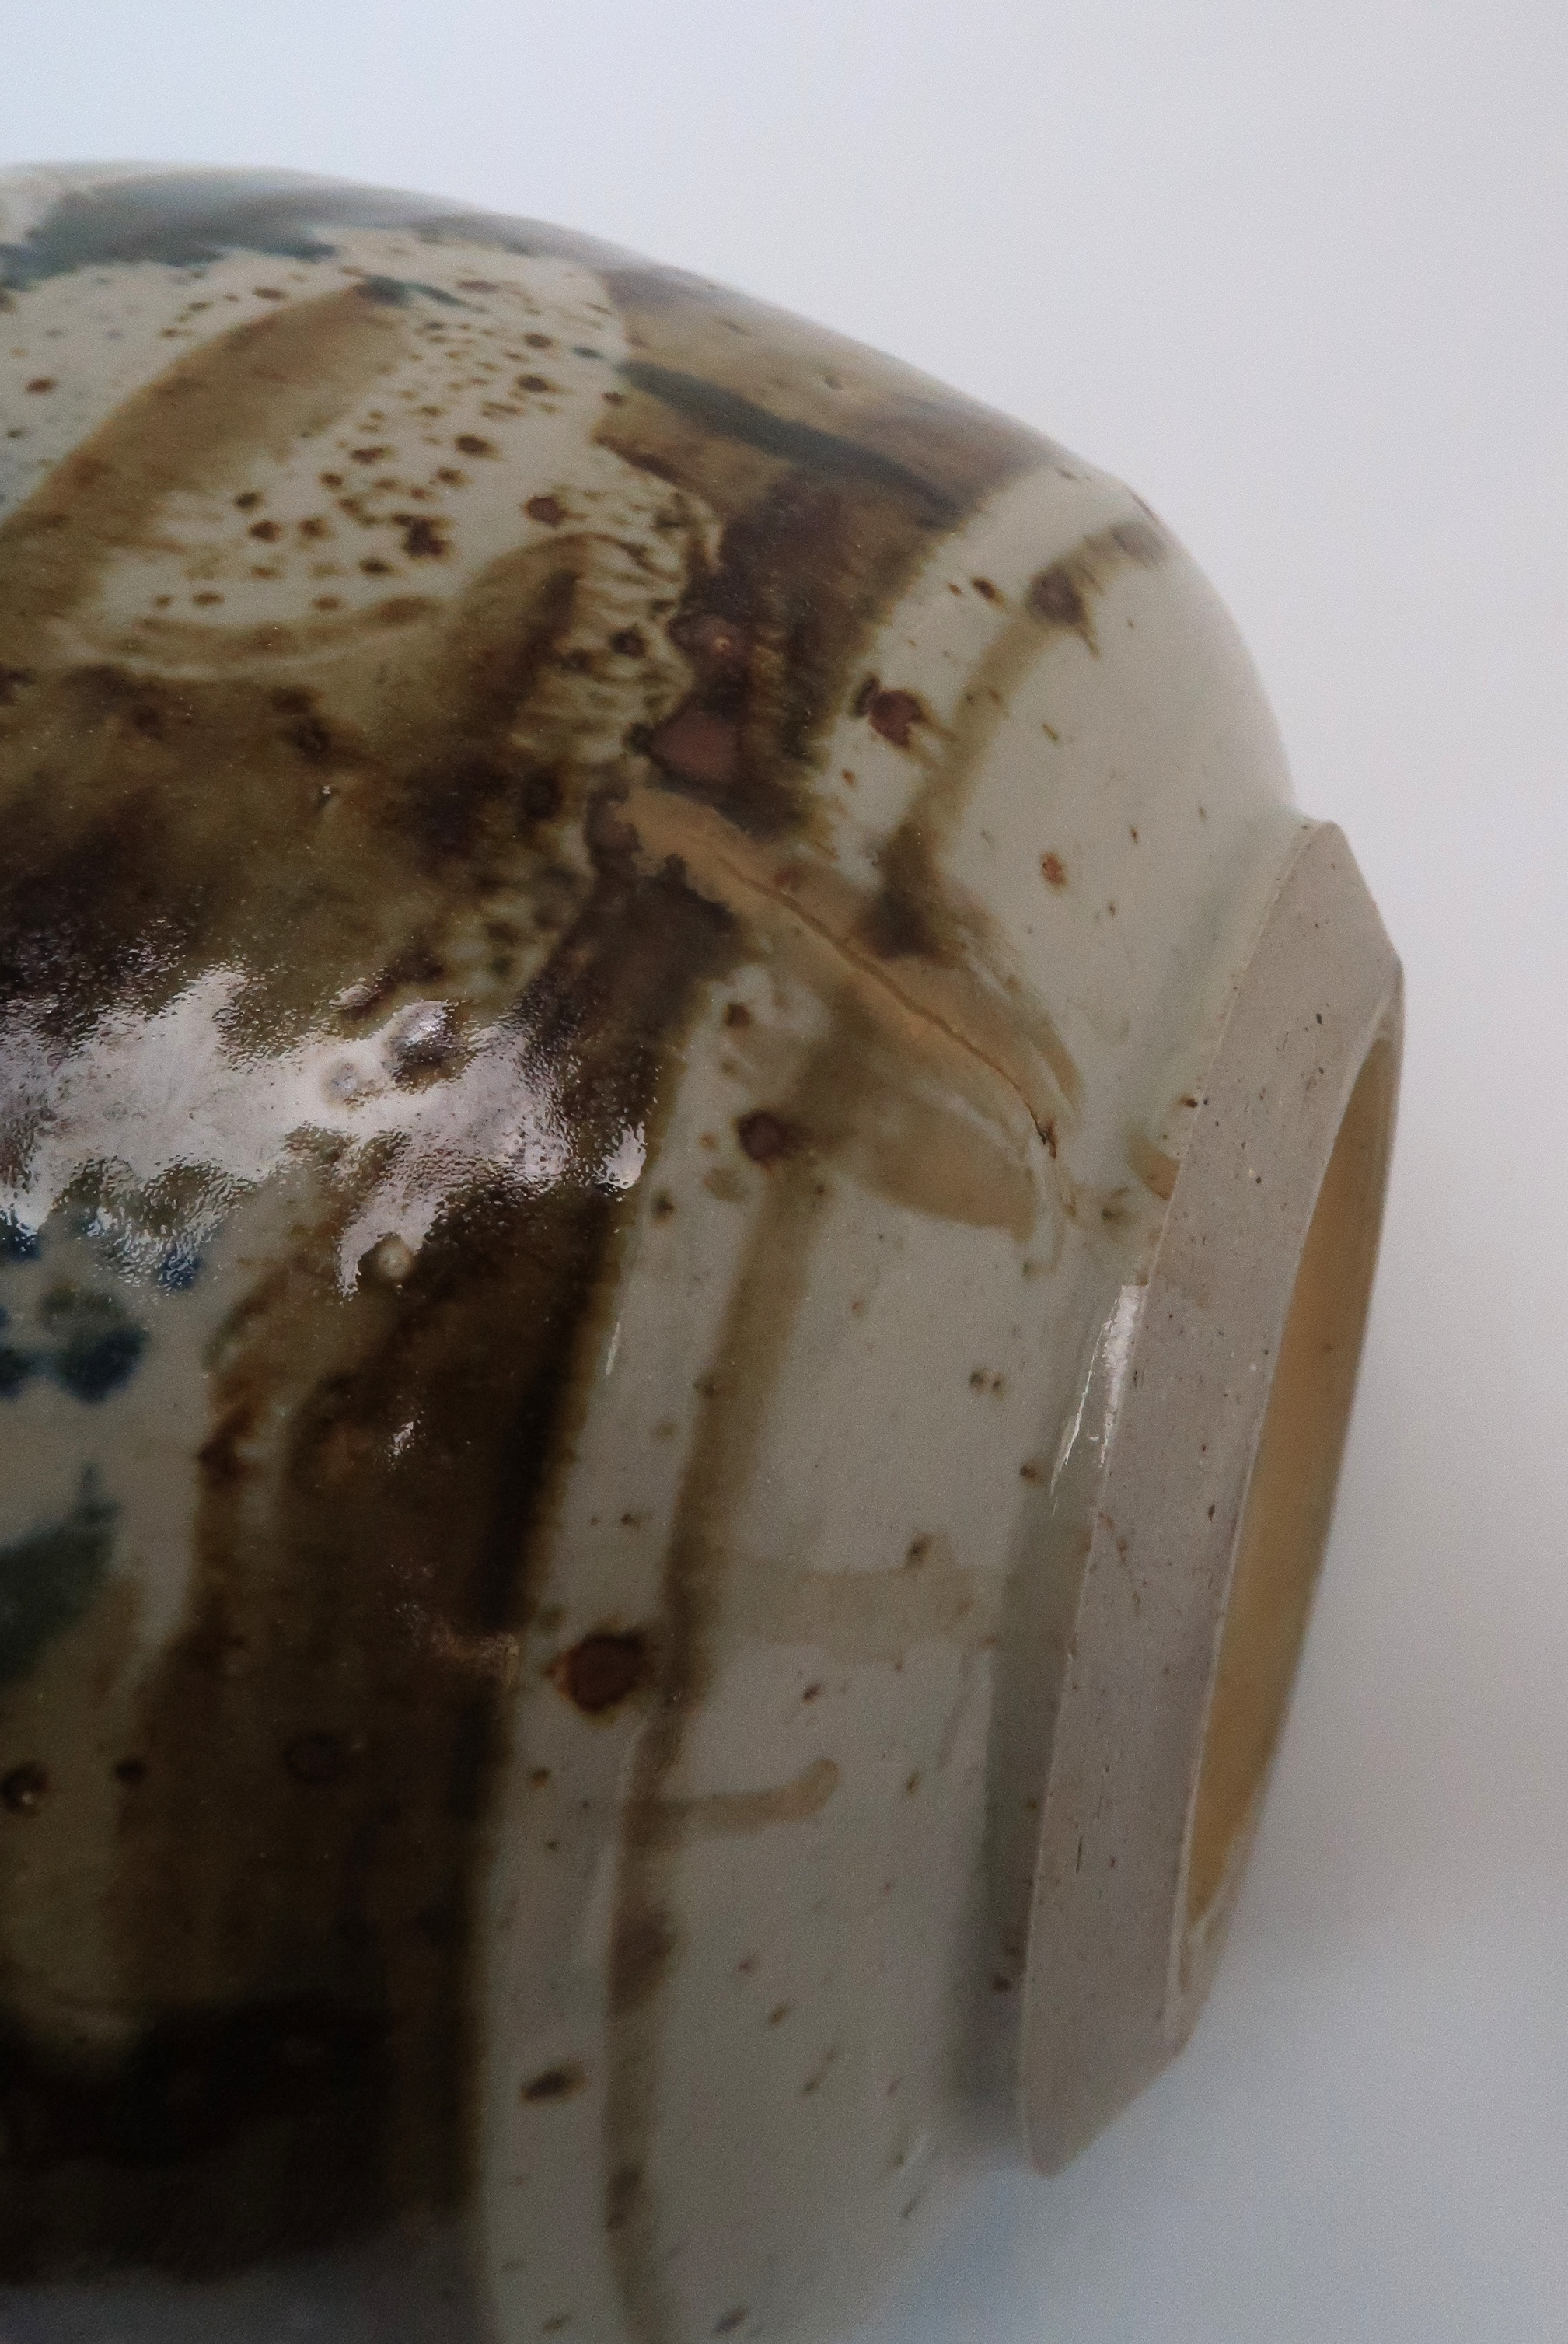 GEORGE SHANKS (1940-2000) - A COLLECTION OF STUDIO POTTERY including a glazed tall vase, 33cm - Image 10 of 15